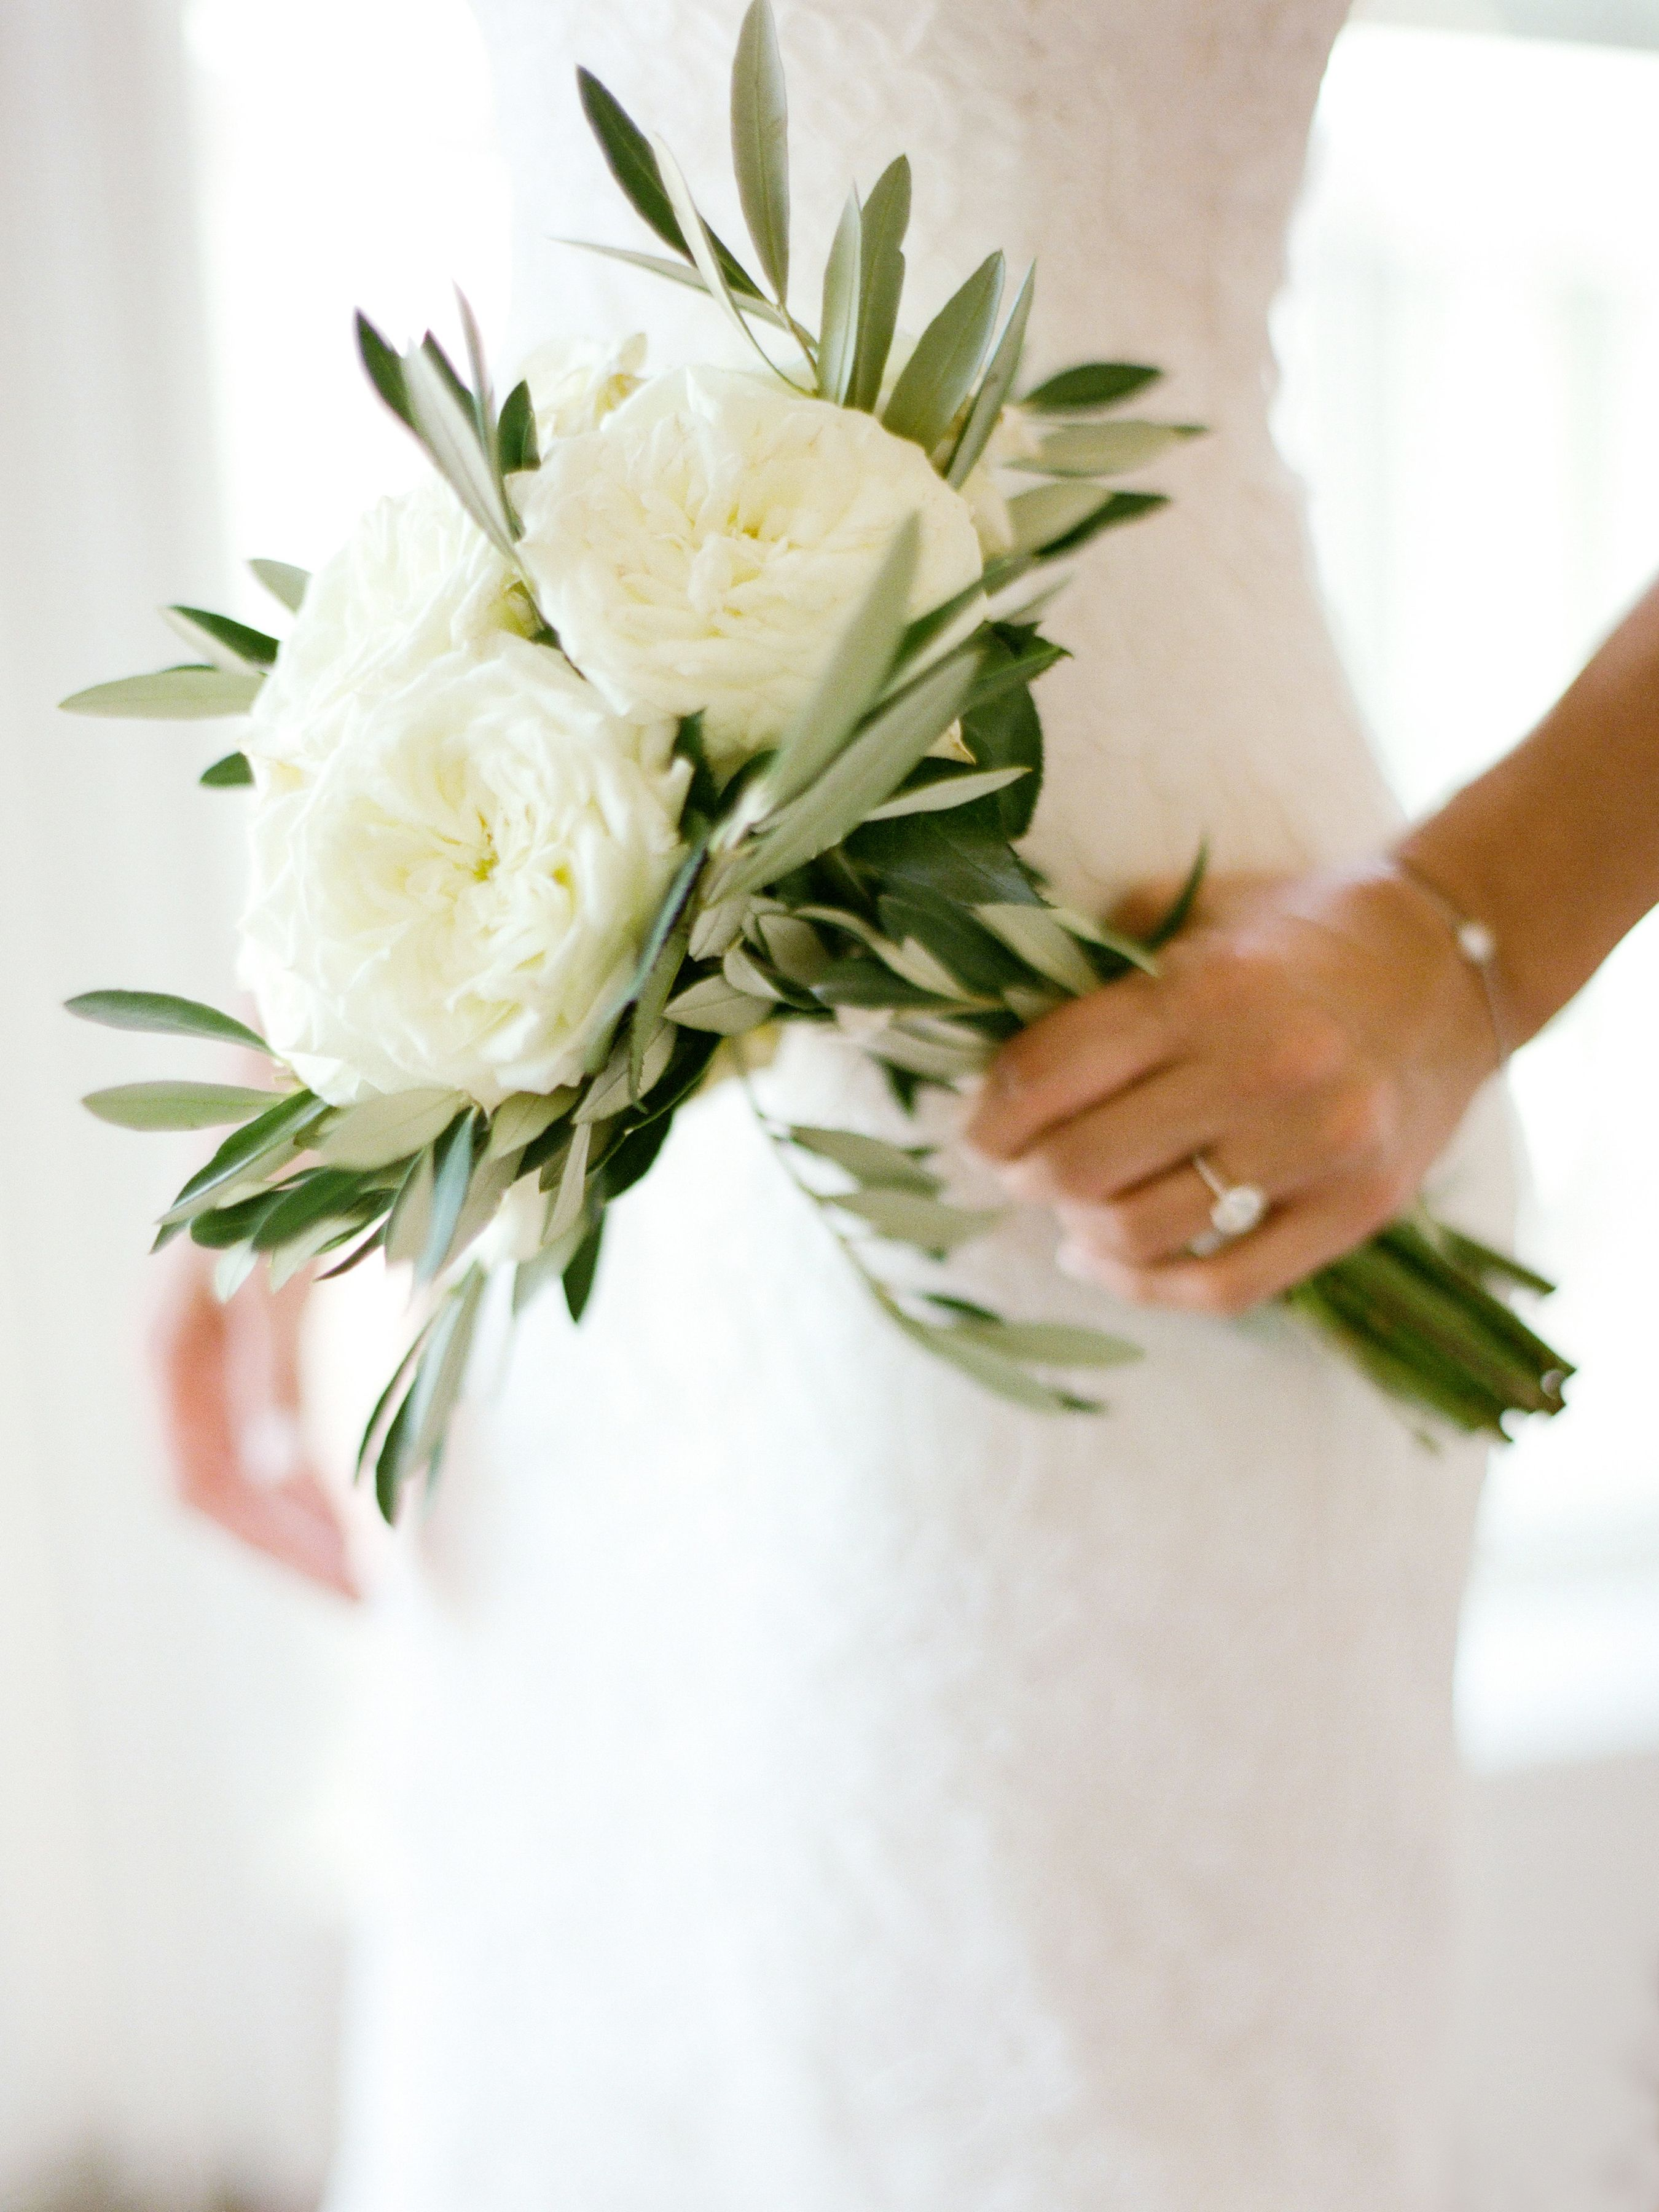 Simple Yet So Chic These Juliette Roses And Olive Branches Make